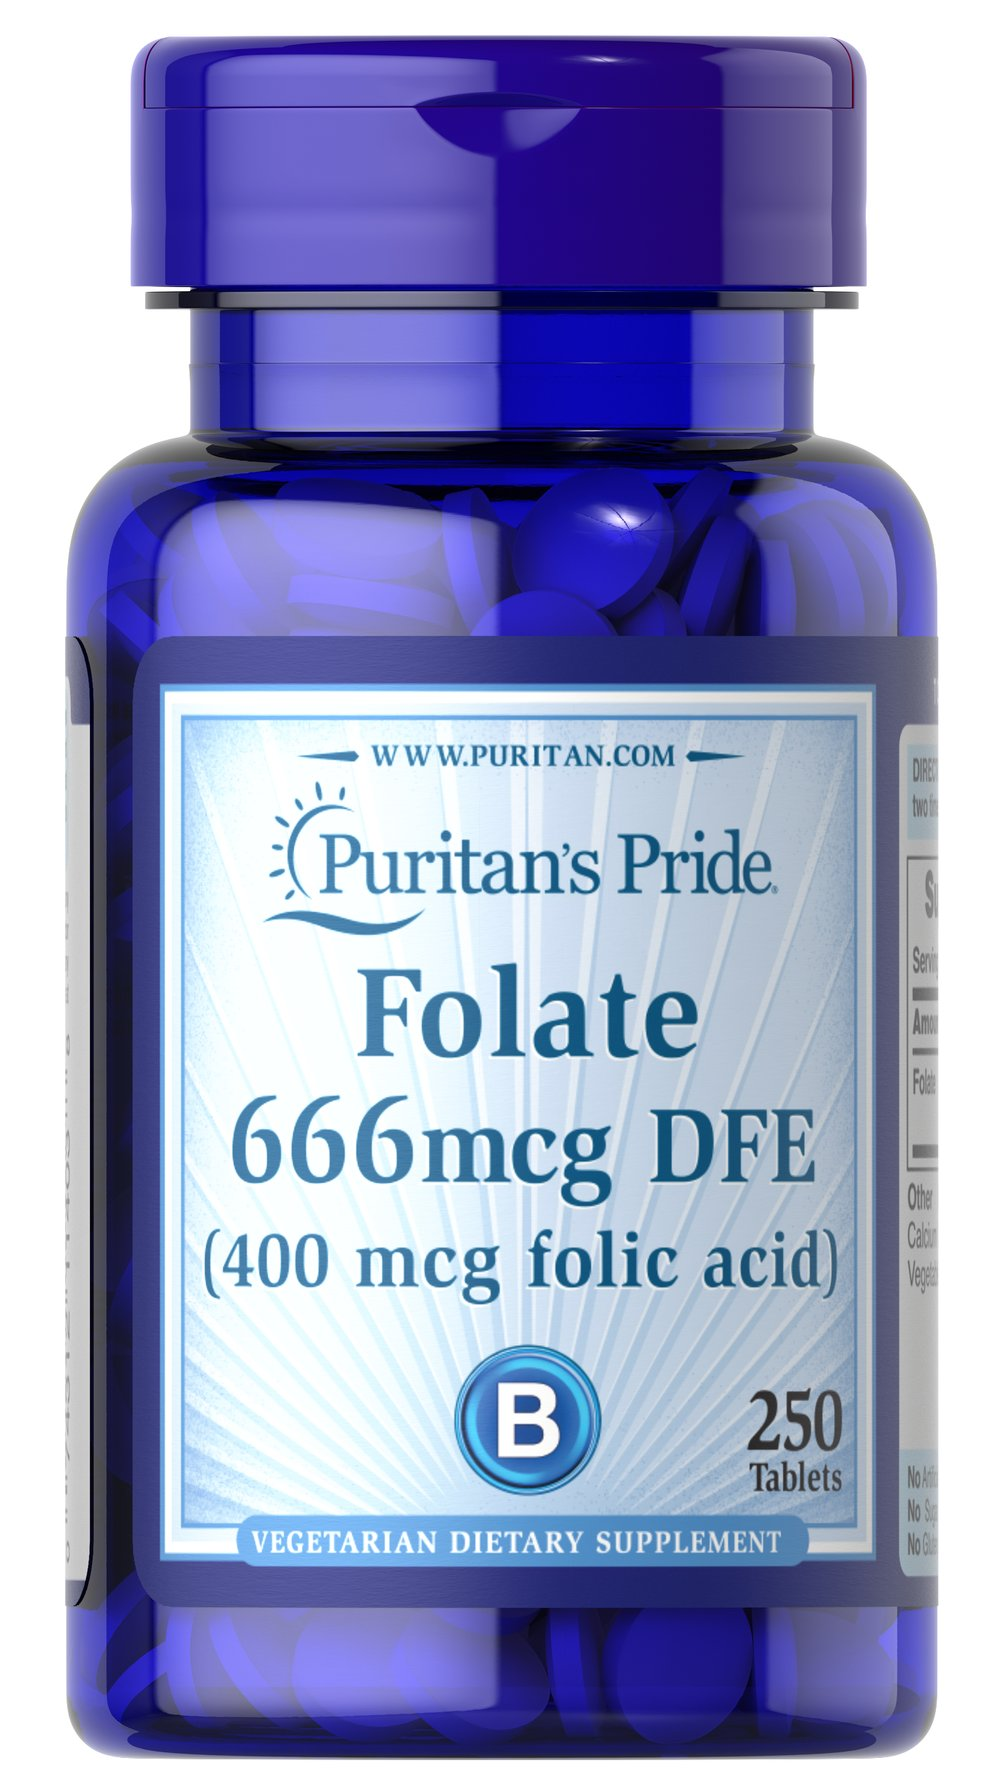 Folic Acid 400 mcg <p>It's well known that Folic Acid is important for pregnant women, but did you also know that this essential B Vitamin also supports cardiovascular health in women and men?** Folic Acid is part of a triad of B Vitamins - along with Vitamins B-6 and B-12 - that helps promote heart health.**</p> 250 Tablets 400 mcg $3.99